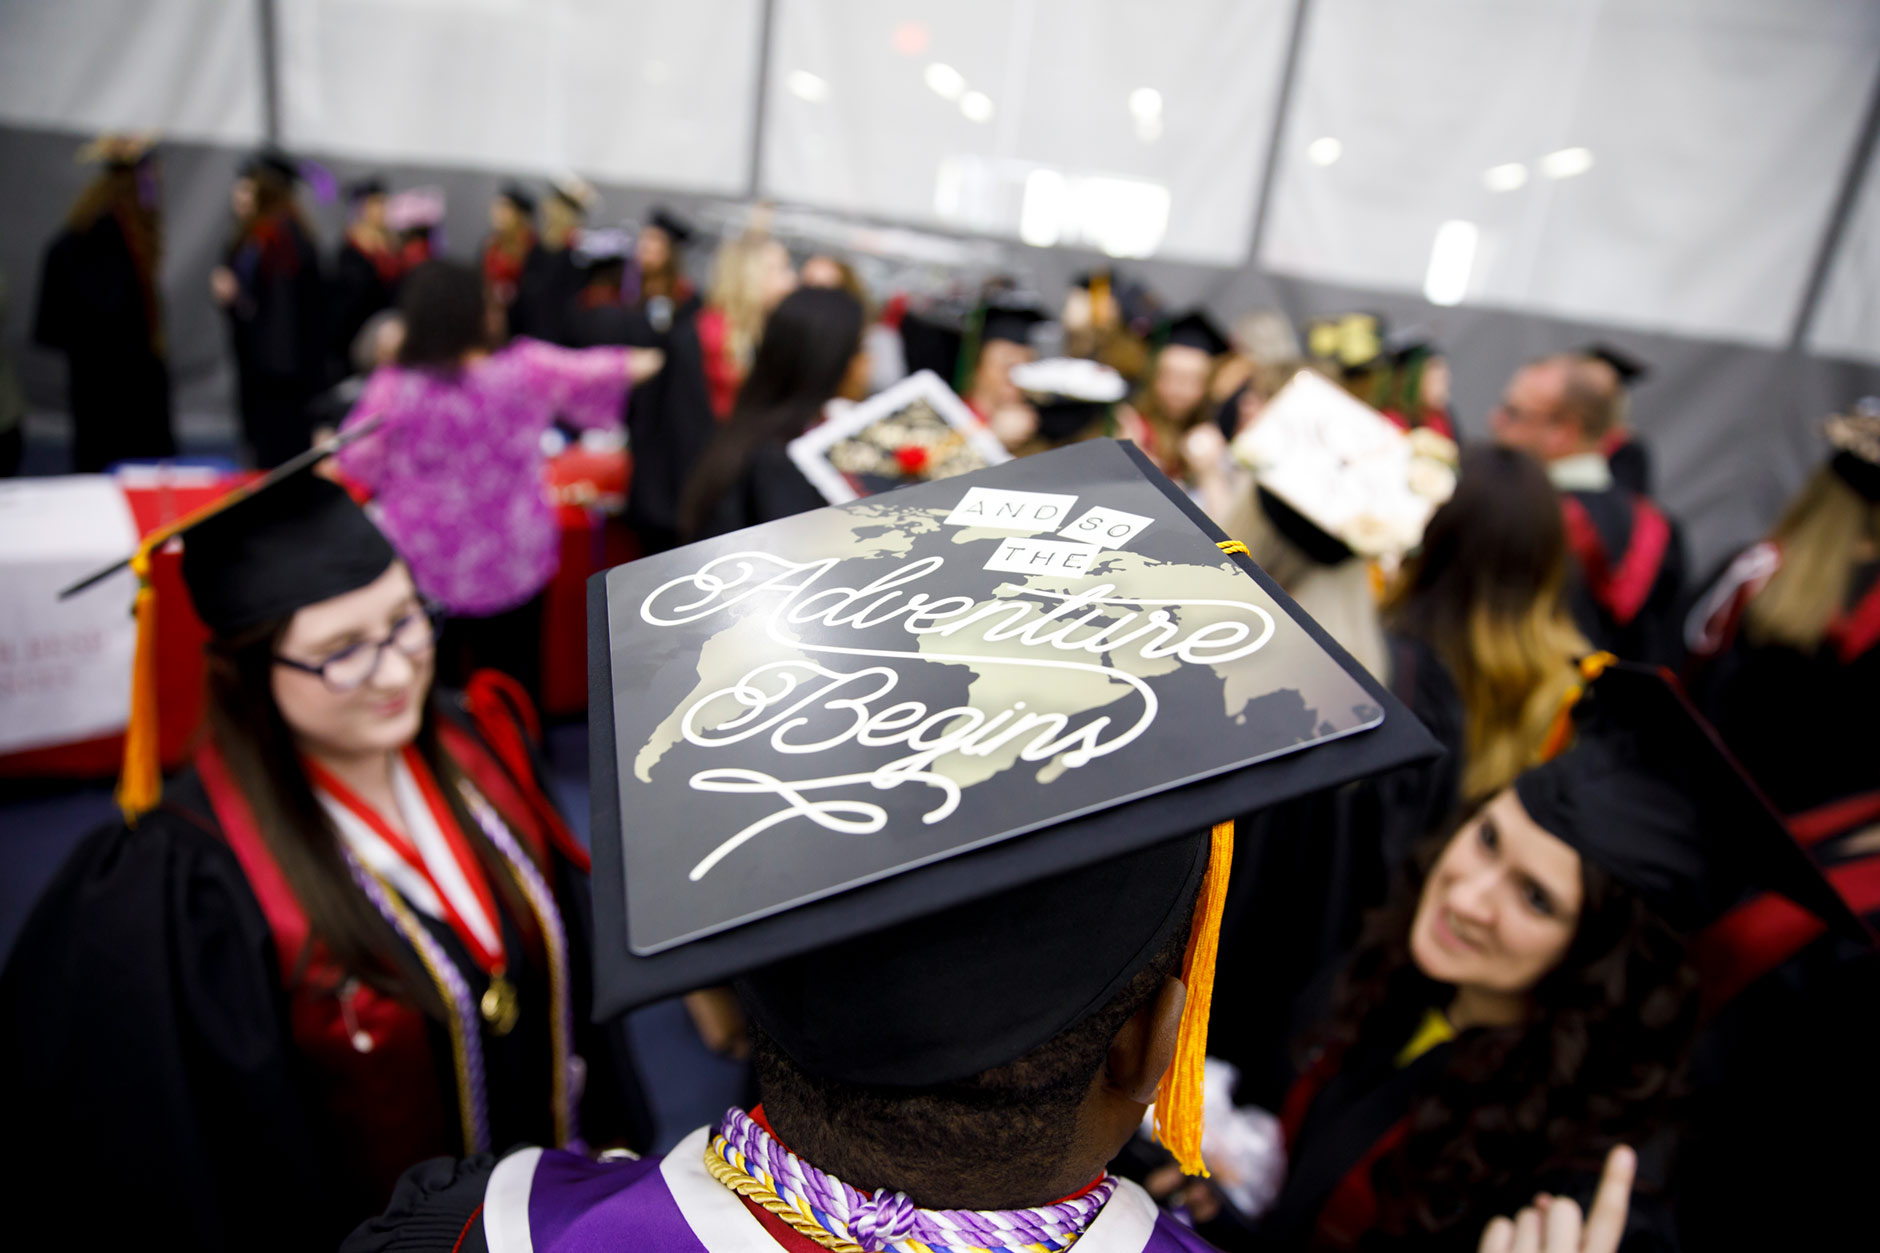 Desmond Atem wears a decorated mortarboard before the Indiana University South Bend Commencement at the University of Notre Dame on Tuesday, May 8, 2018. (James Brosher/IU Communications)